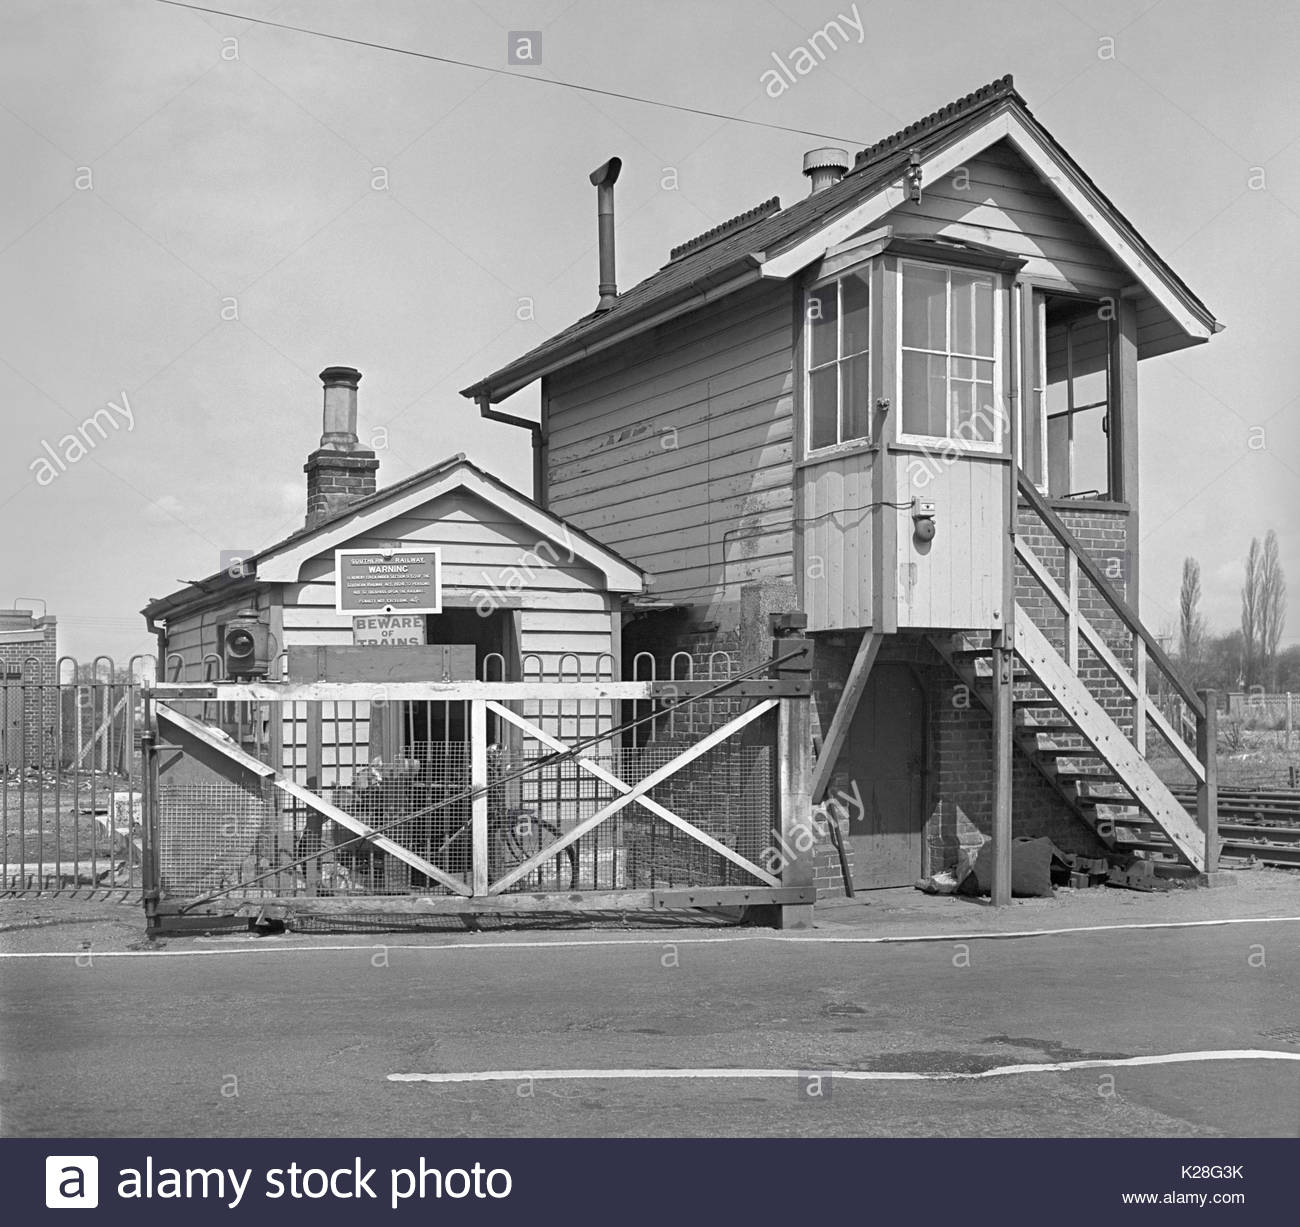 Signal Box and level crossing at North Camp railway station, Farnborough,Hampshire, England, UK on the British Rail line between Reading and Guildford – level crossing gates opened outwards – 1960s (1968) - Stock Image